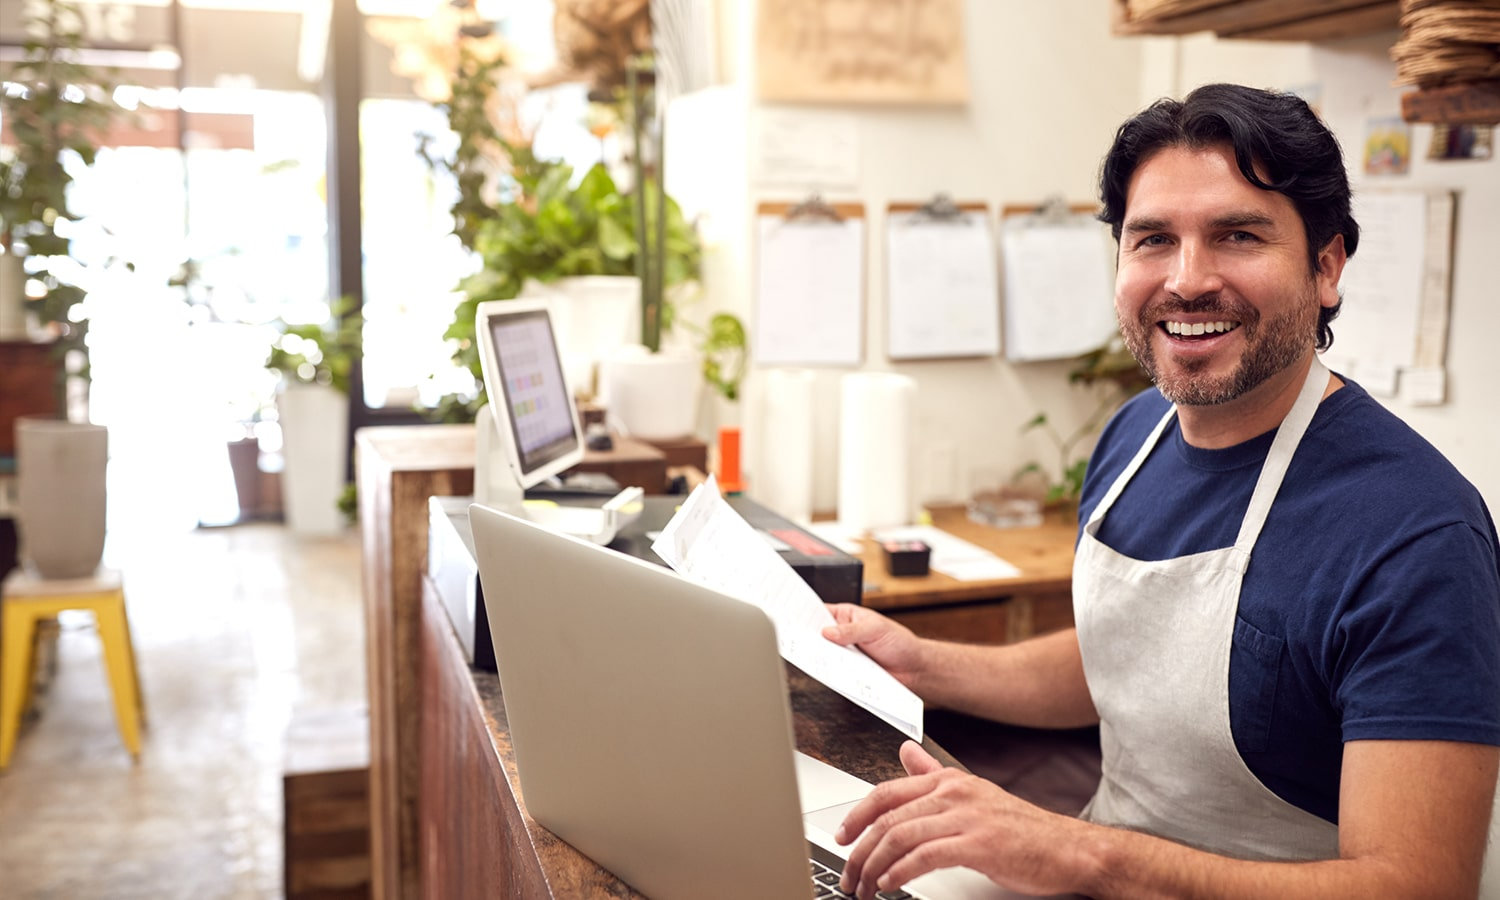 3 Common Legal Issues Faced by Small Businesses